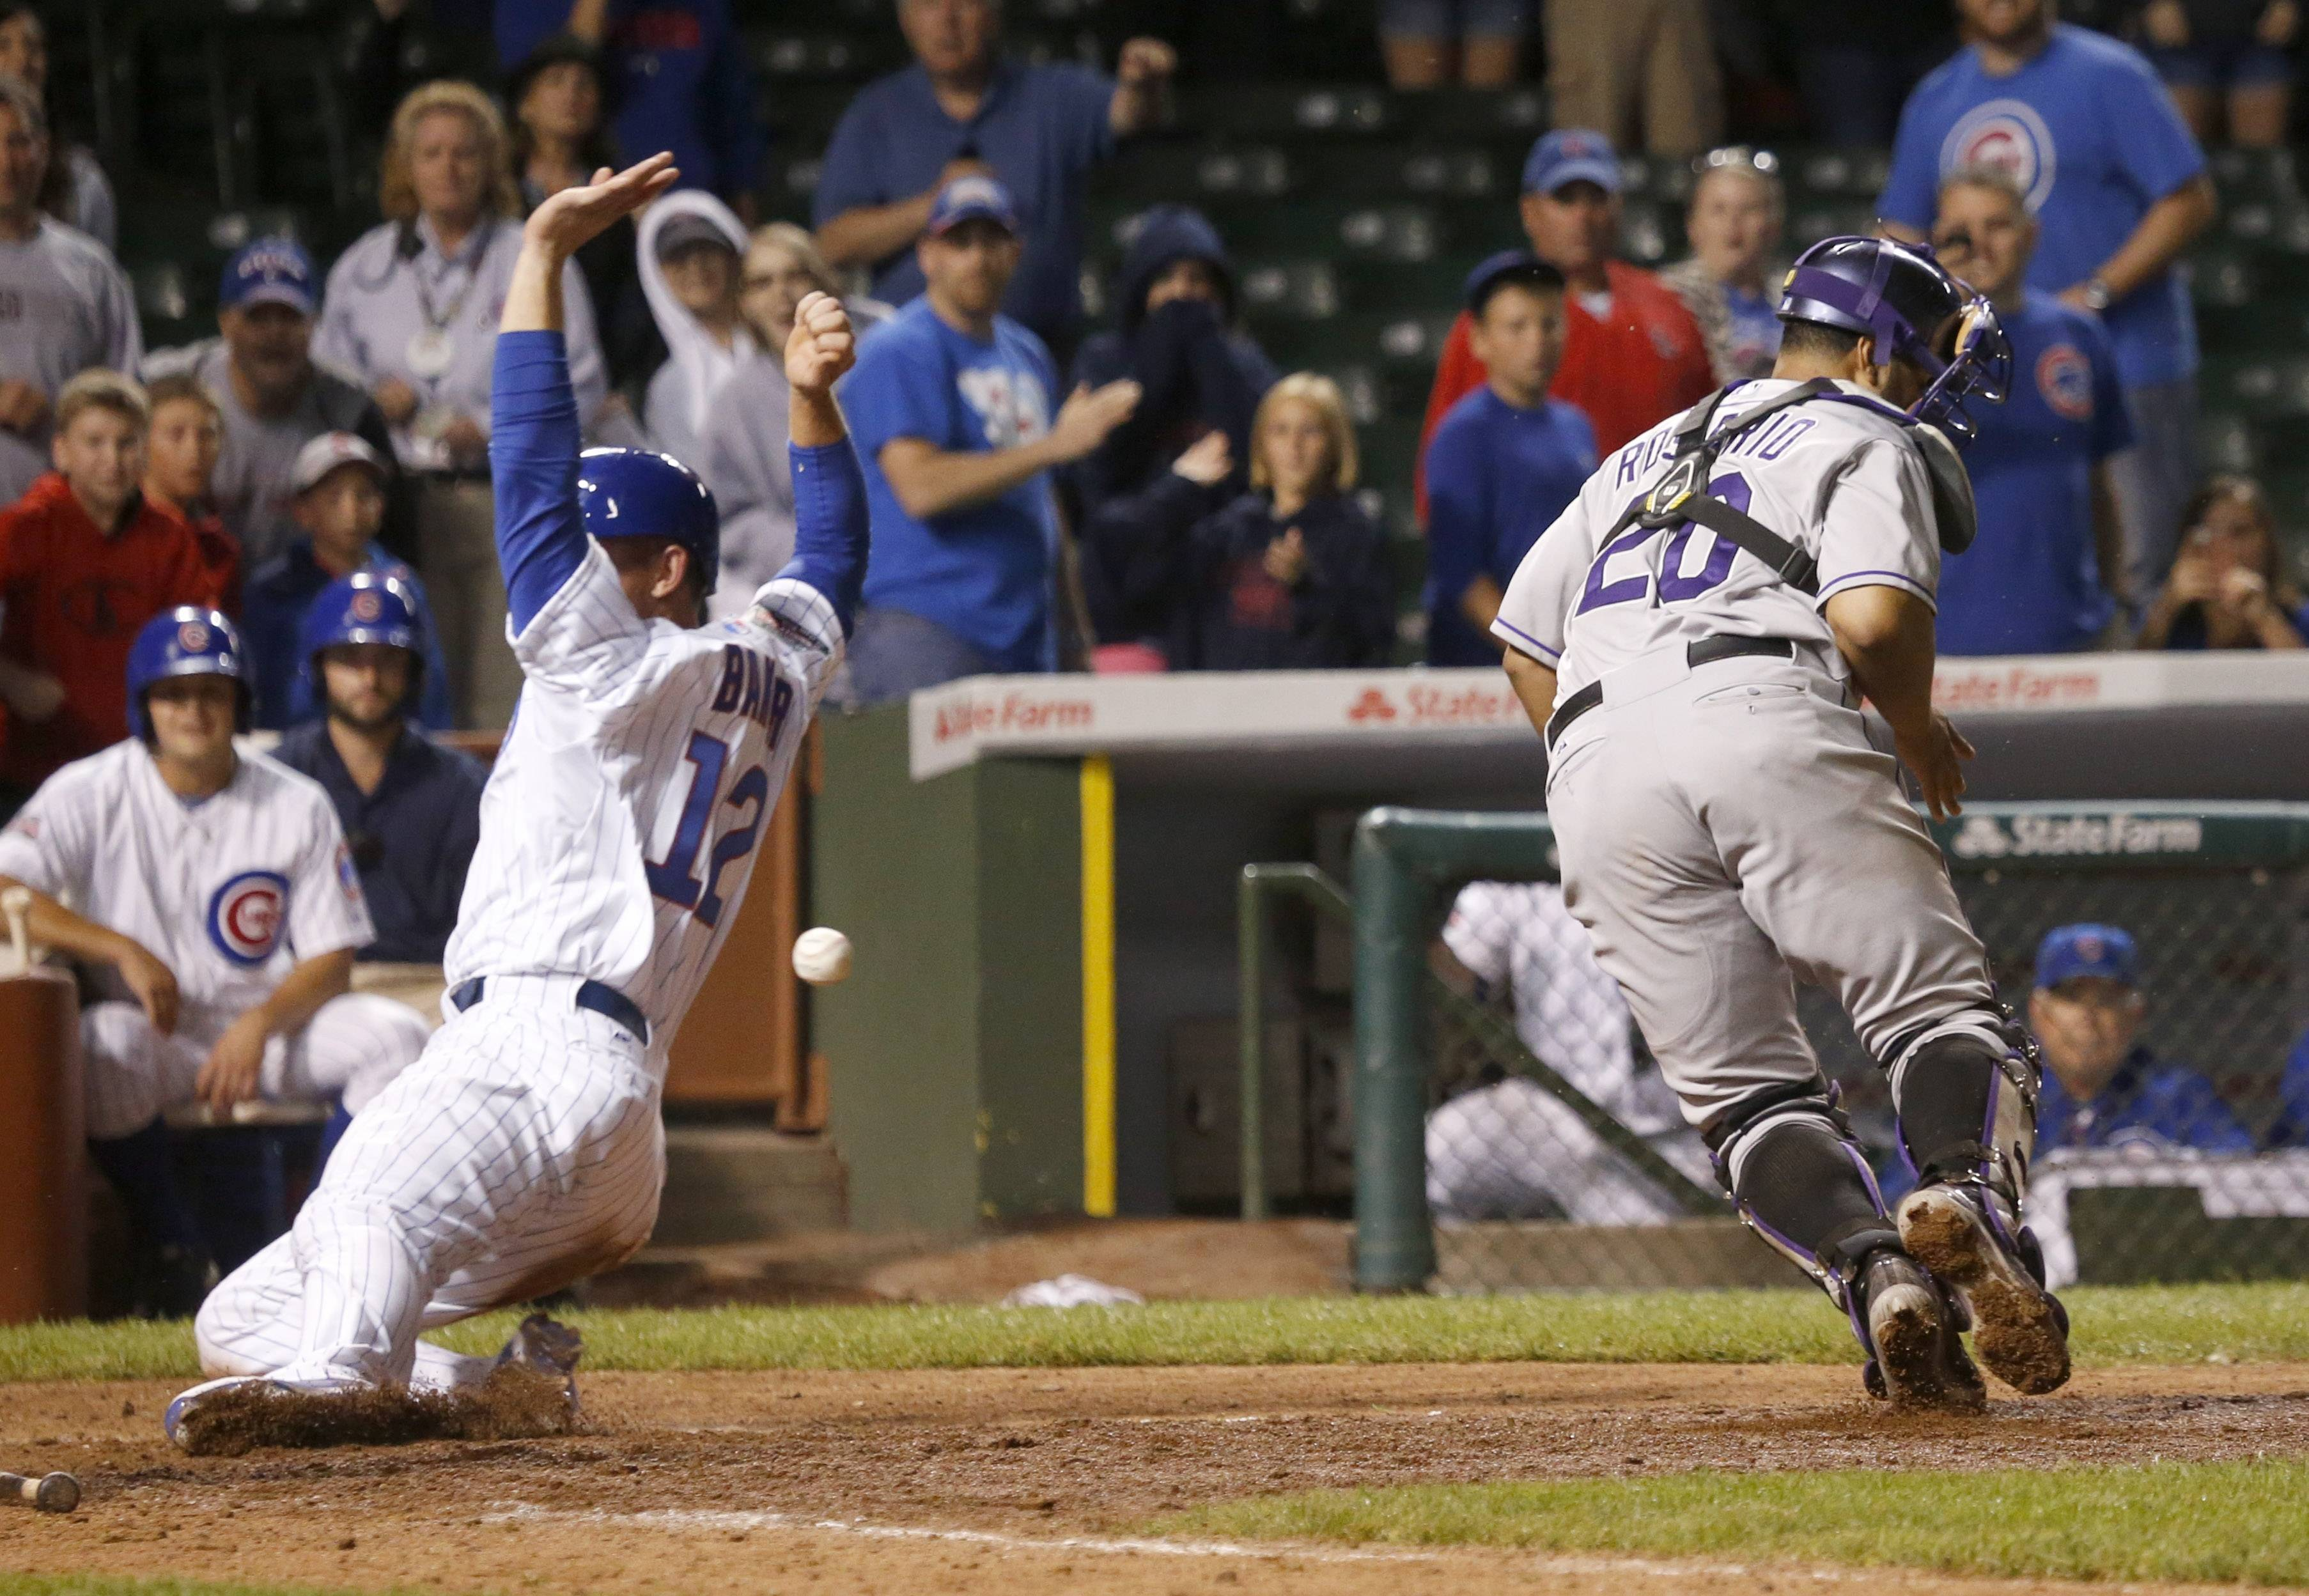 The Cubs' John Baker, left, scores the game winning run off a sacrifice fly by Starlin Castro, as the ball gets past Colorado Rockies catcher Wilin Rosario during the 16th inning Wednesday in Chicago. The Cubs' won 4-3 and Baker got the win for pitching the 16th inning.